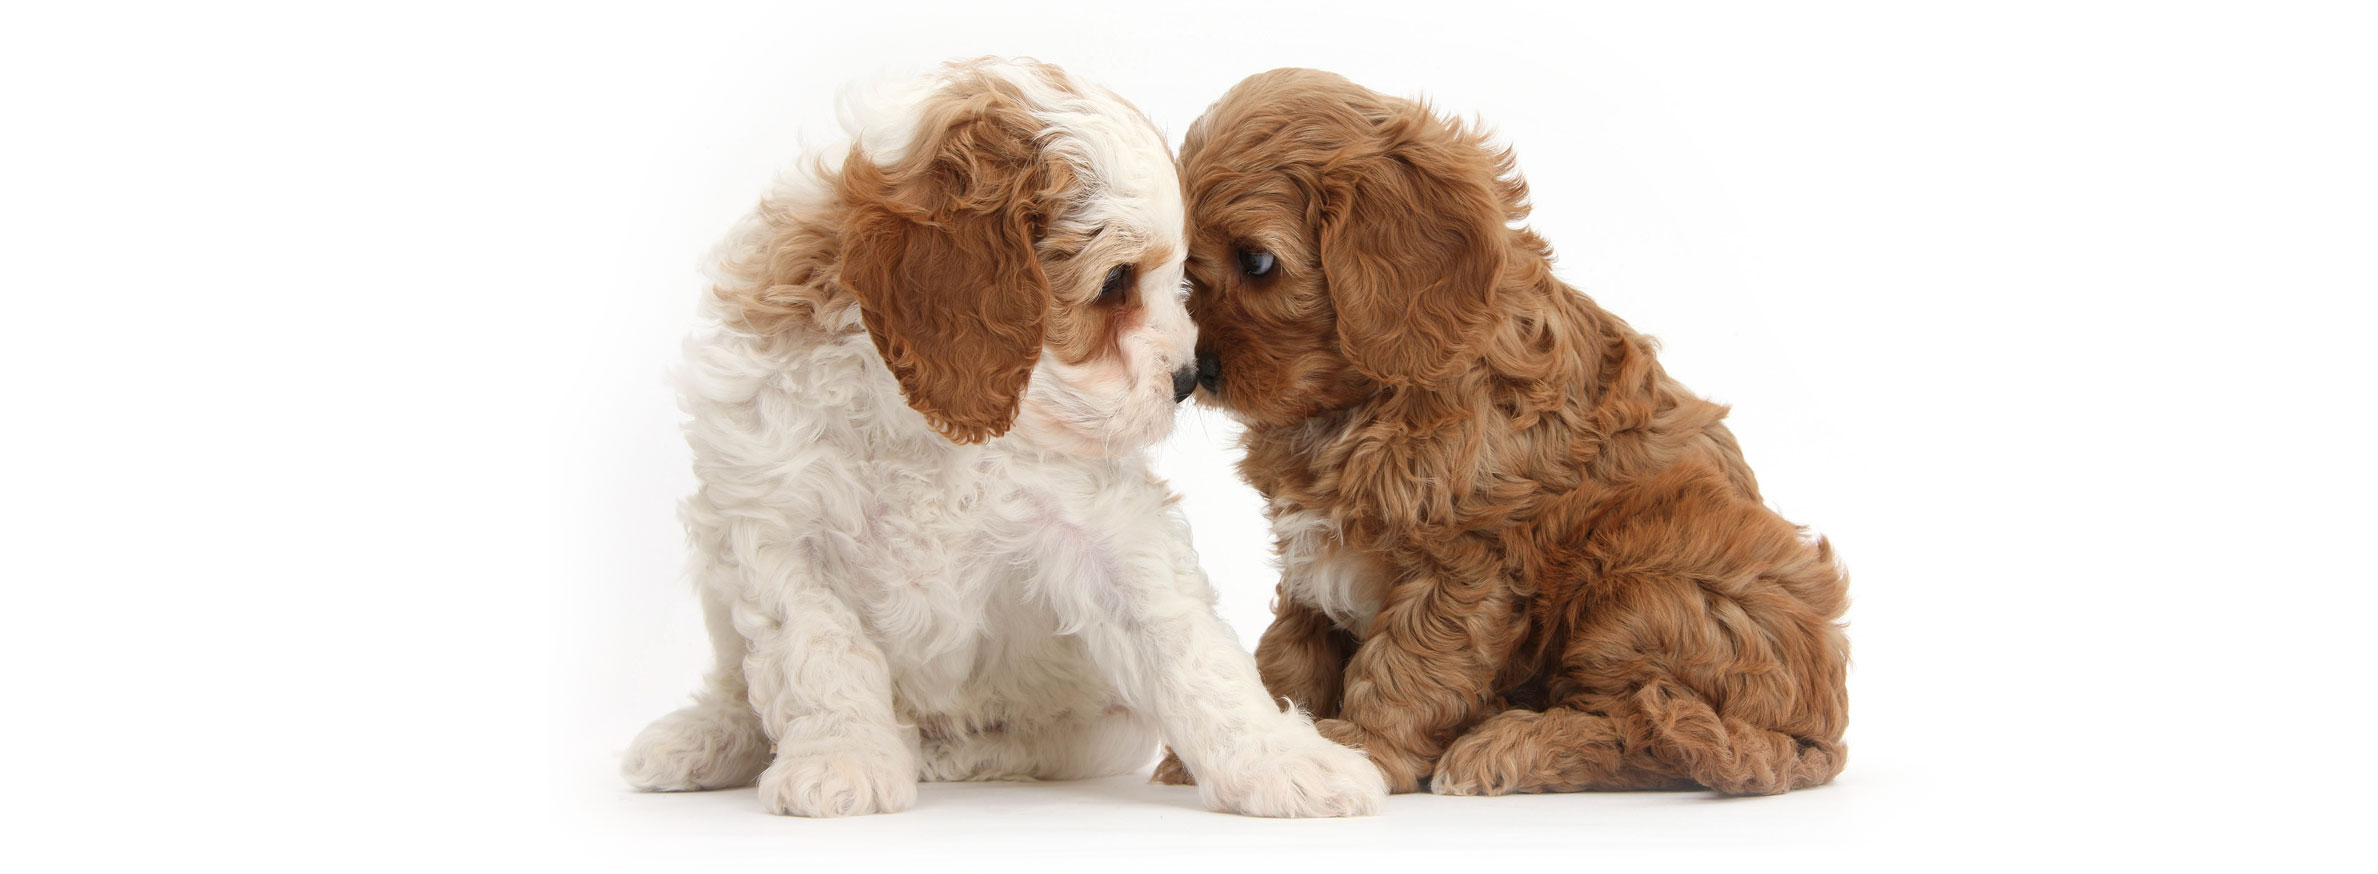 South Dakota labradoodle puppies